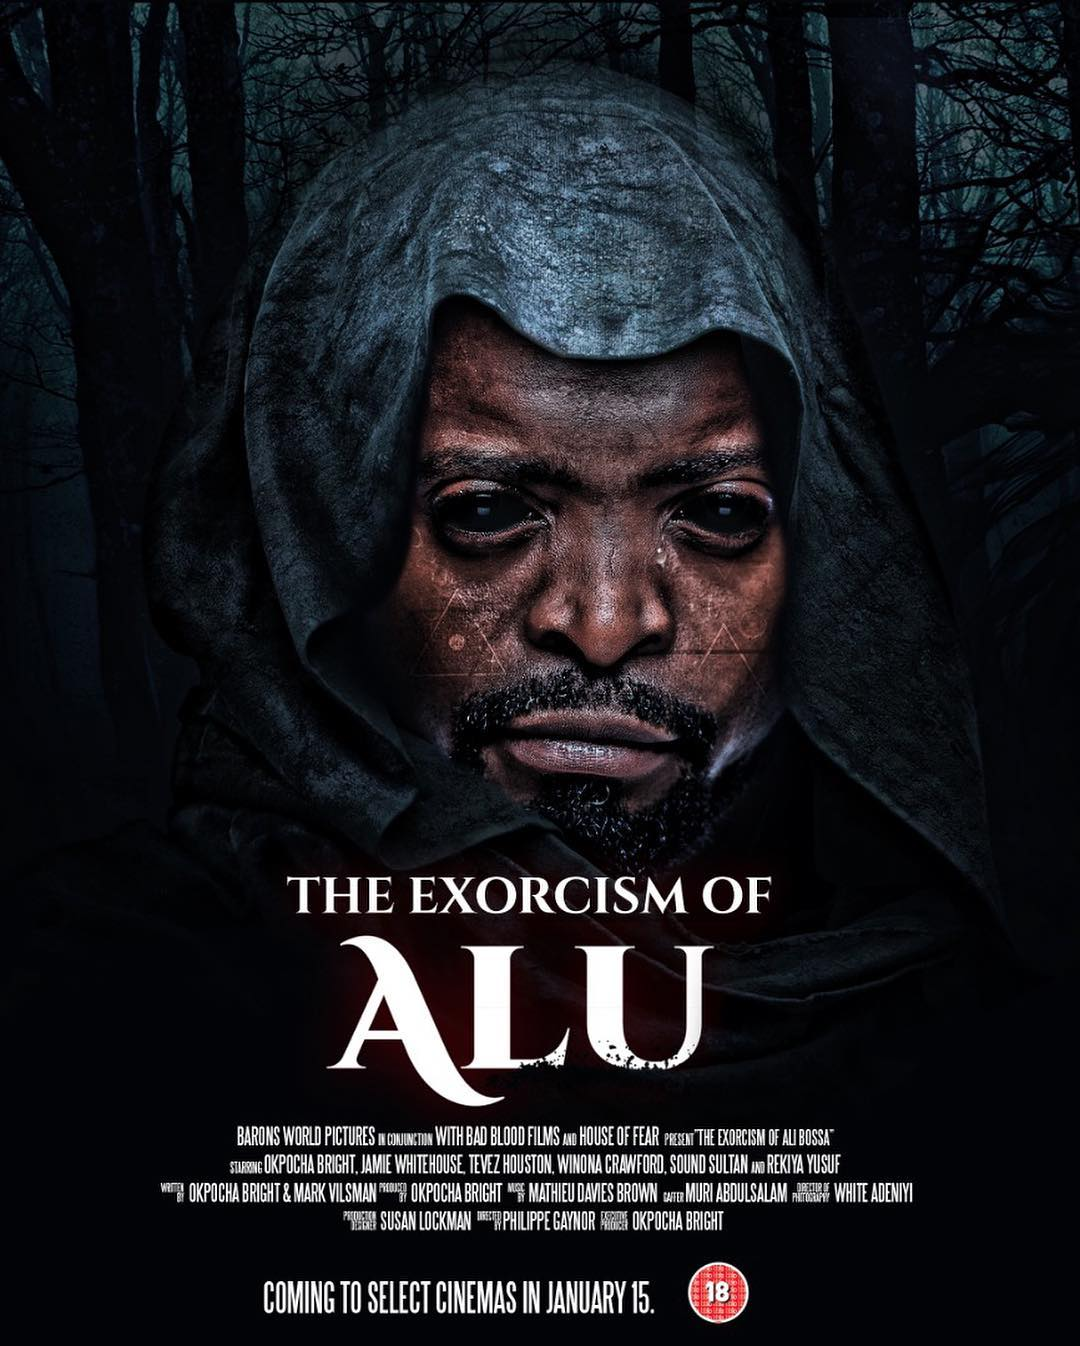 Basketmouth feature film - Basketmouth Set To Release His First Feature Film On January 15th